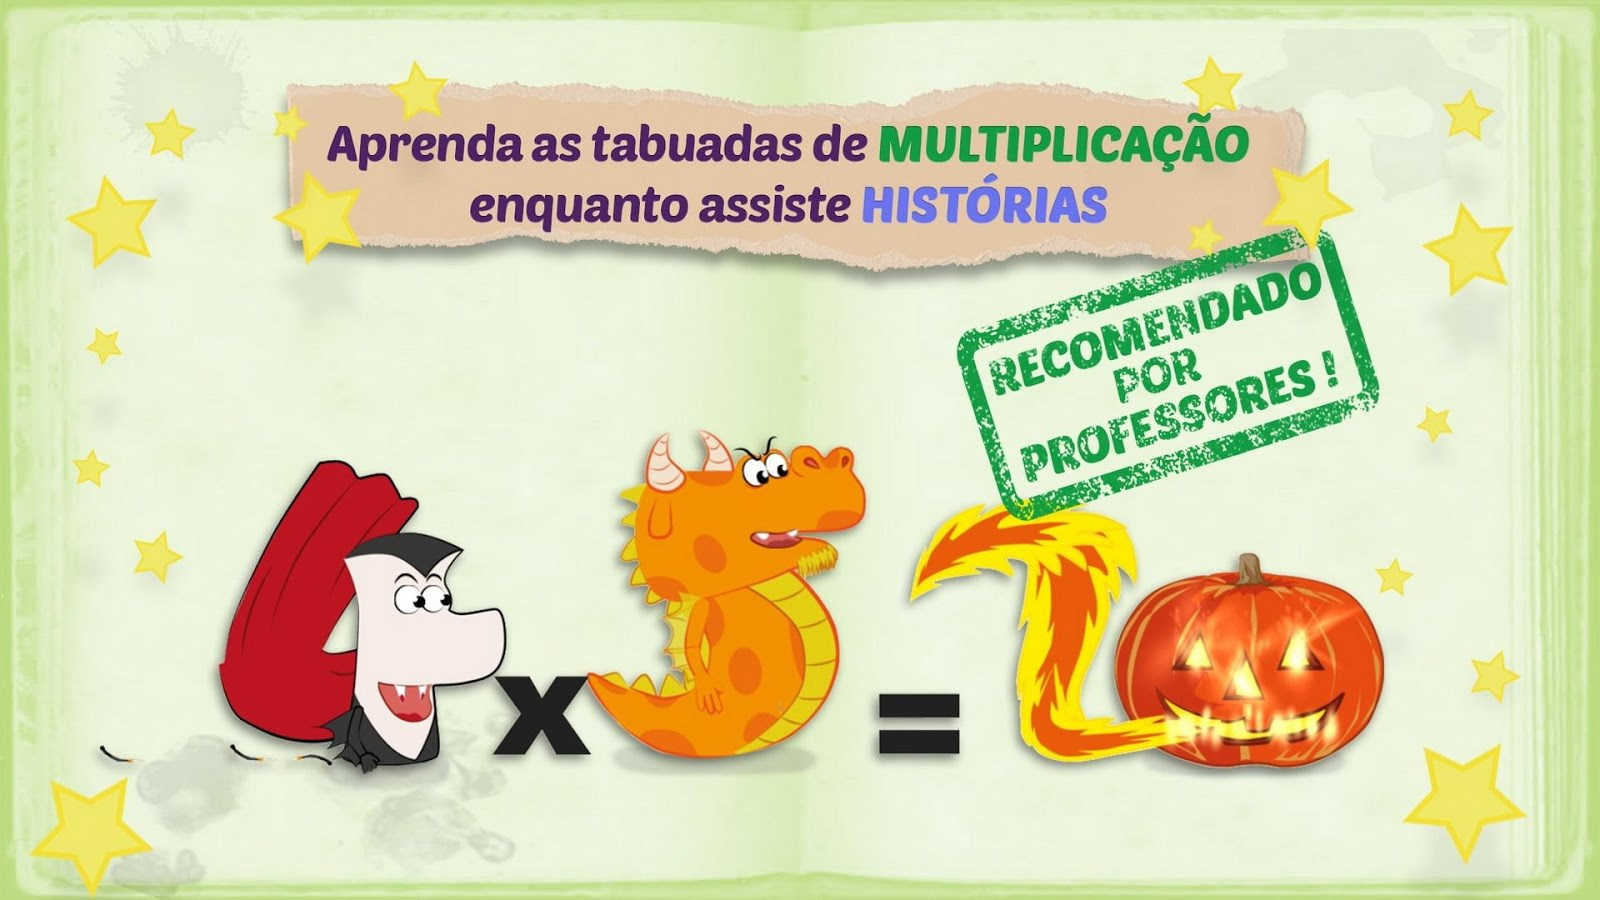 Mathemagics Multiplication - Imagem 1 do software